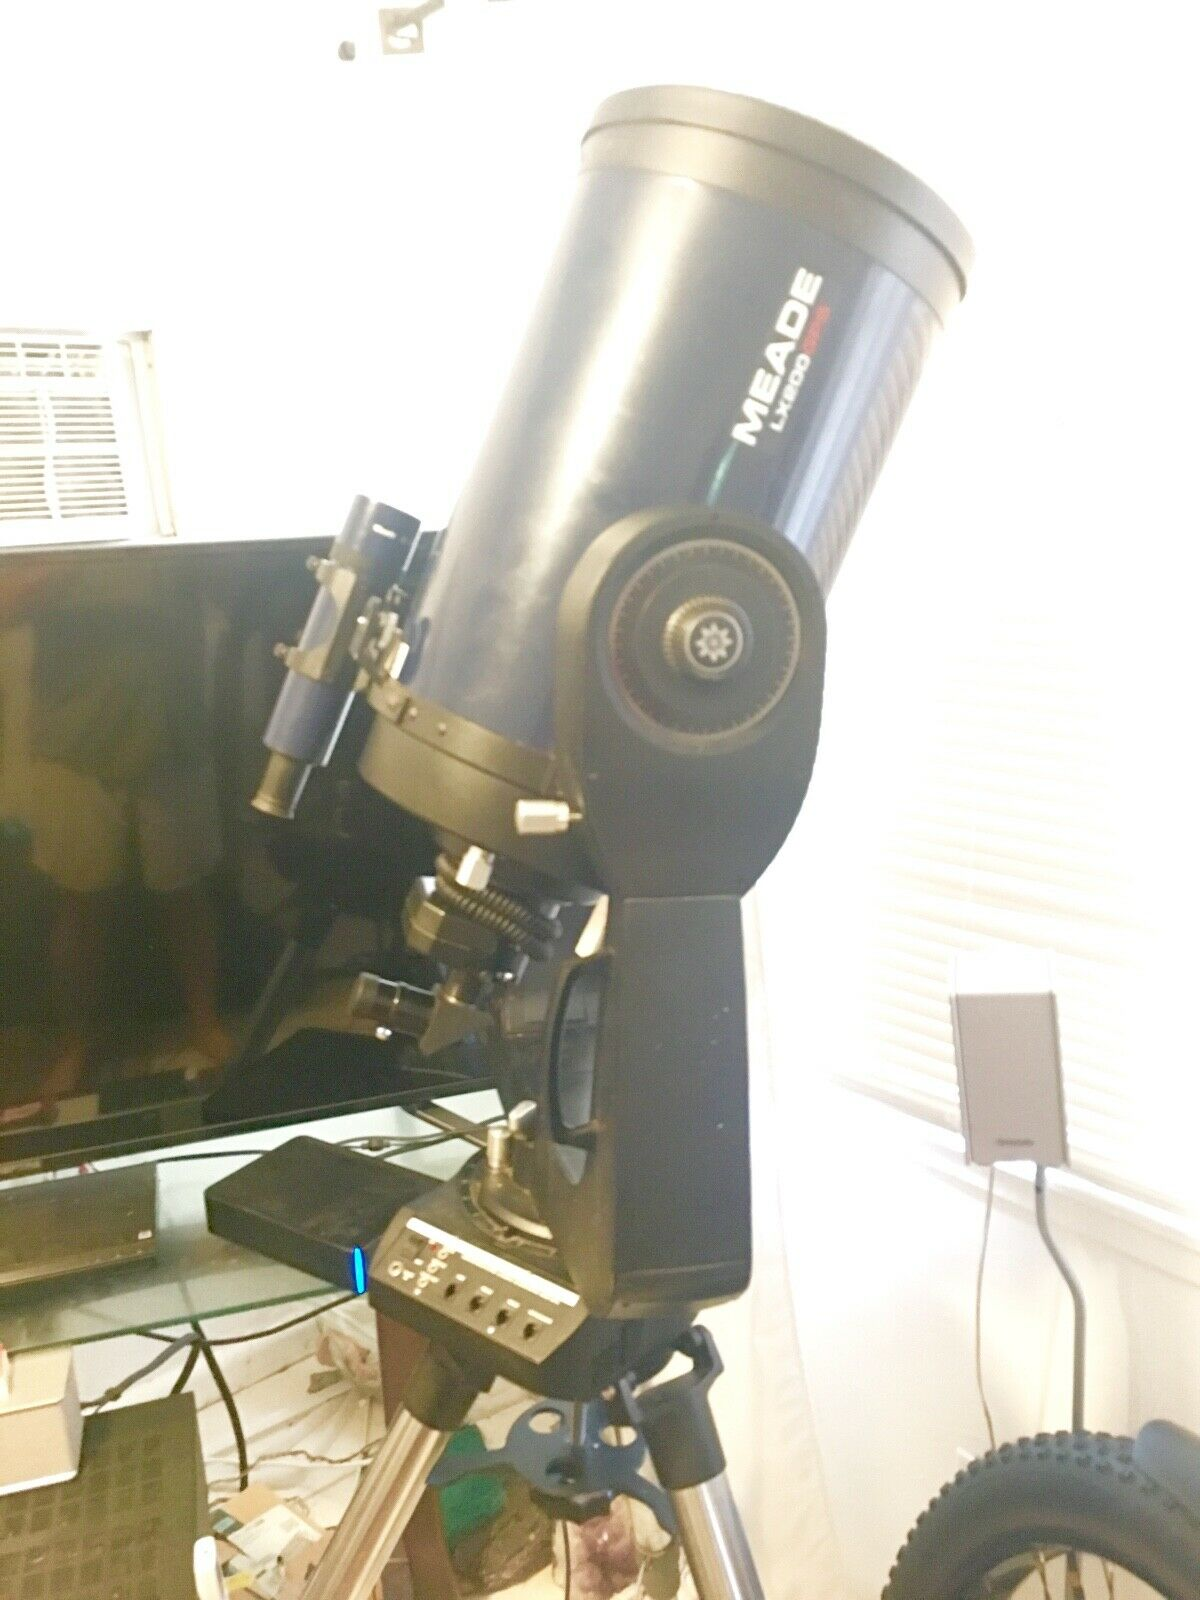 MEADE LX200 GPS 10 Telescope, Loaded, Shipping Box, Tripod, Micro Focuser - $2,399.00